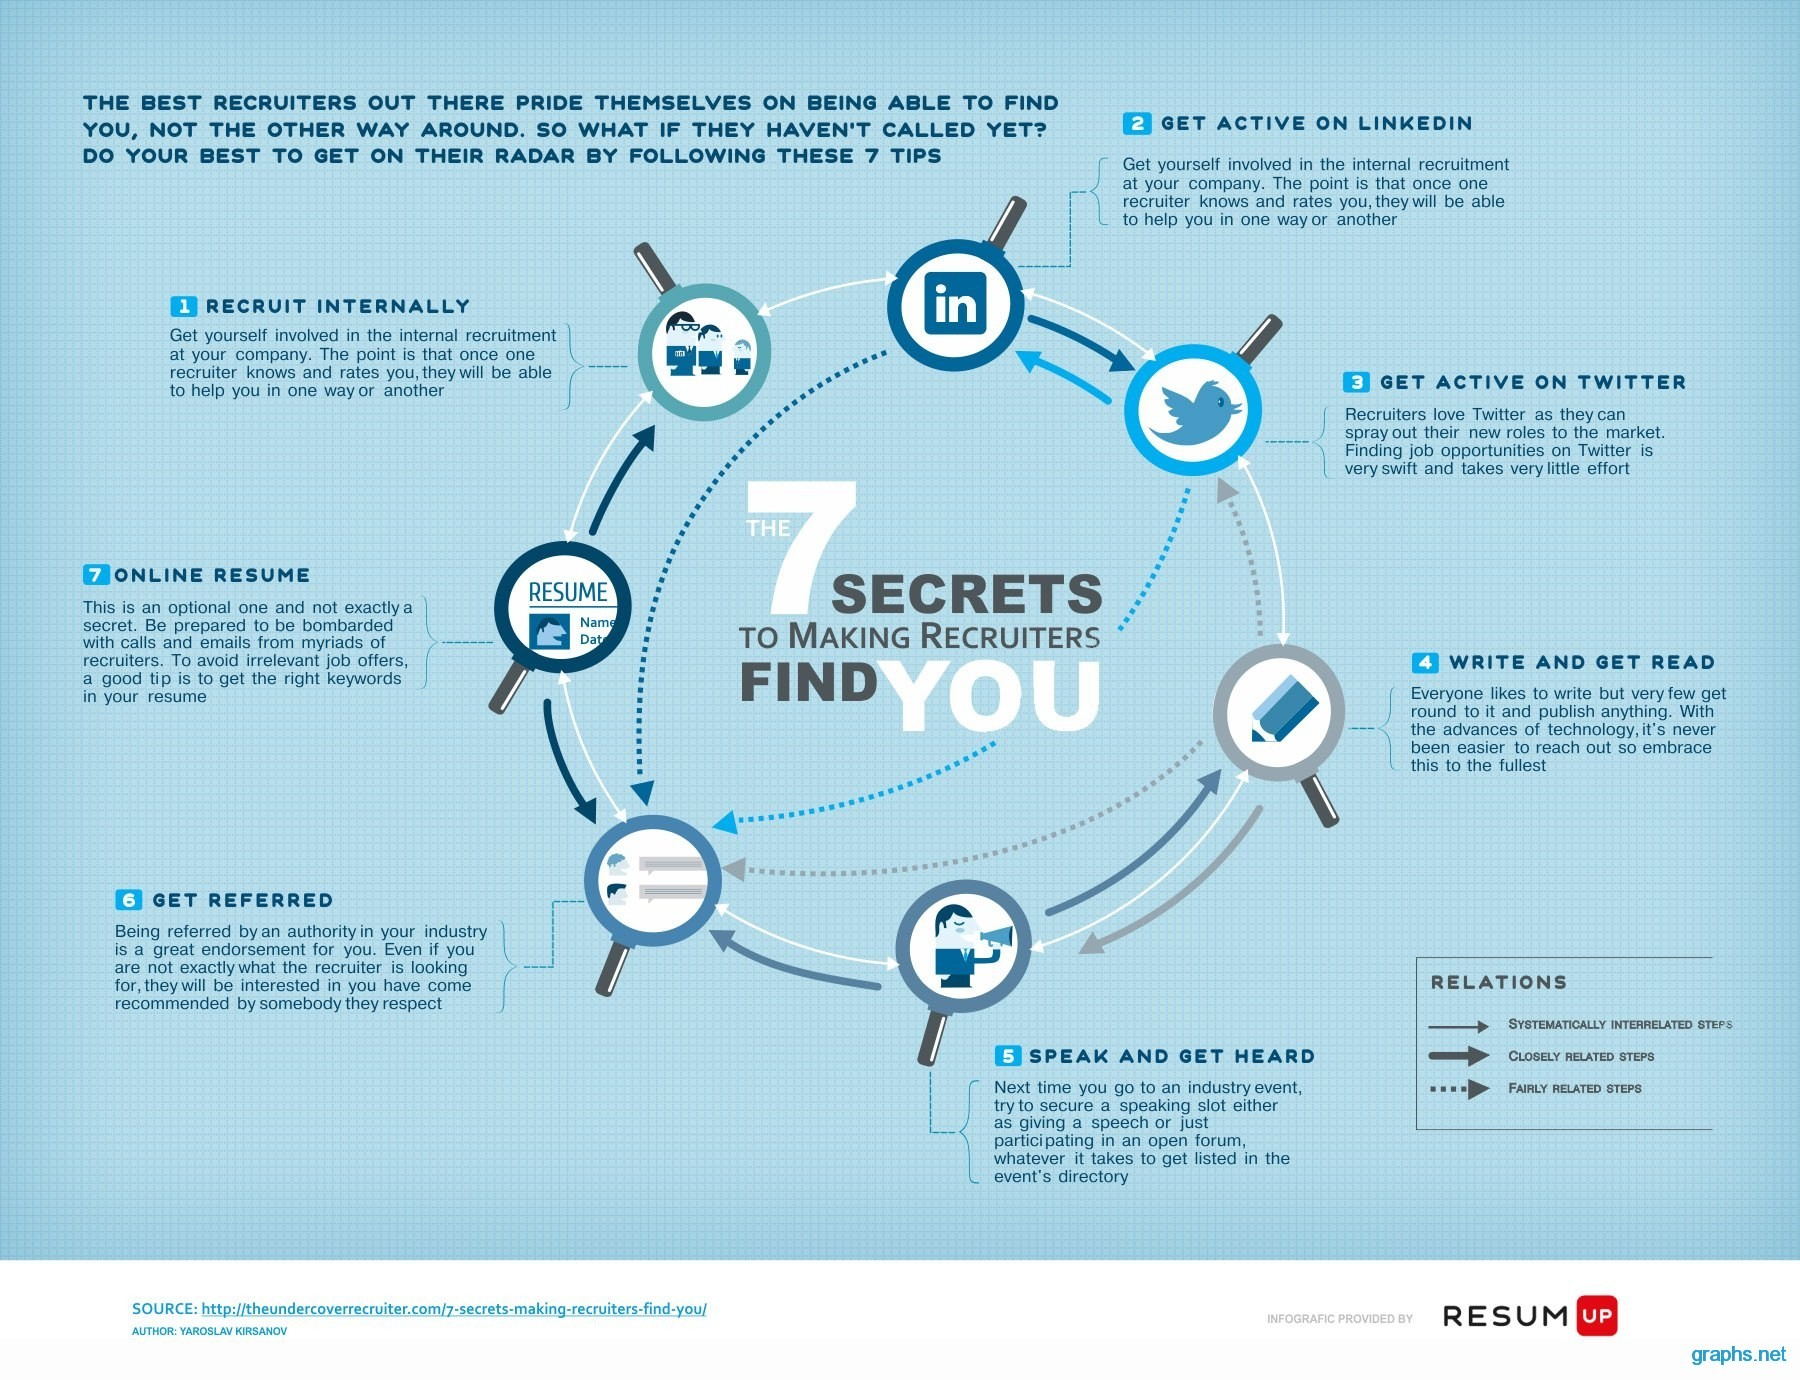 Steps to Attract Recruiters